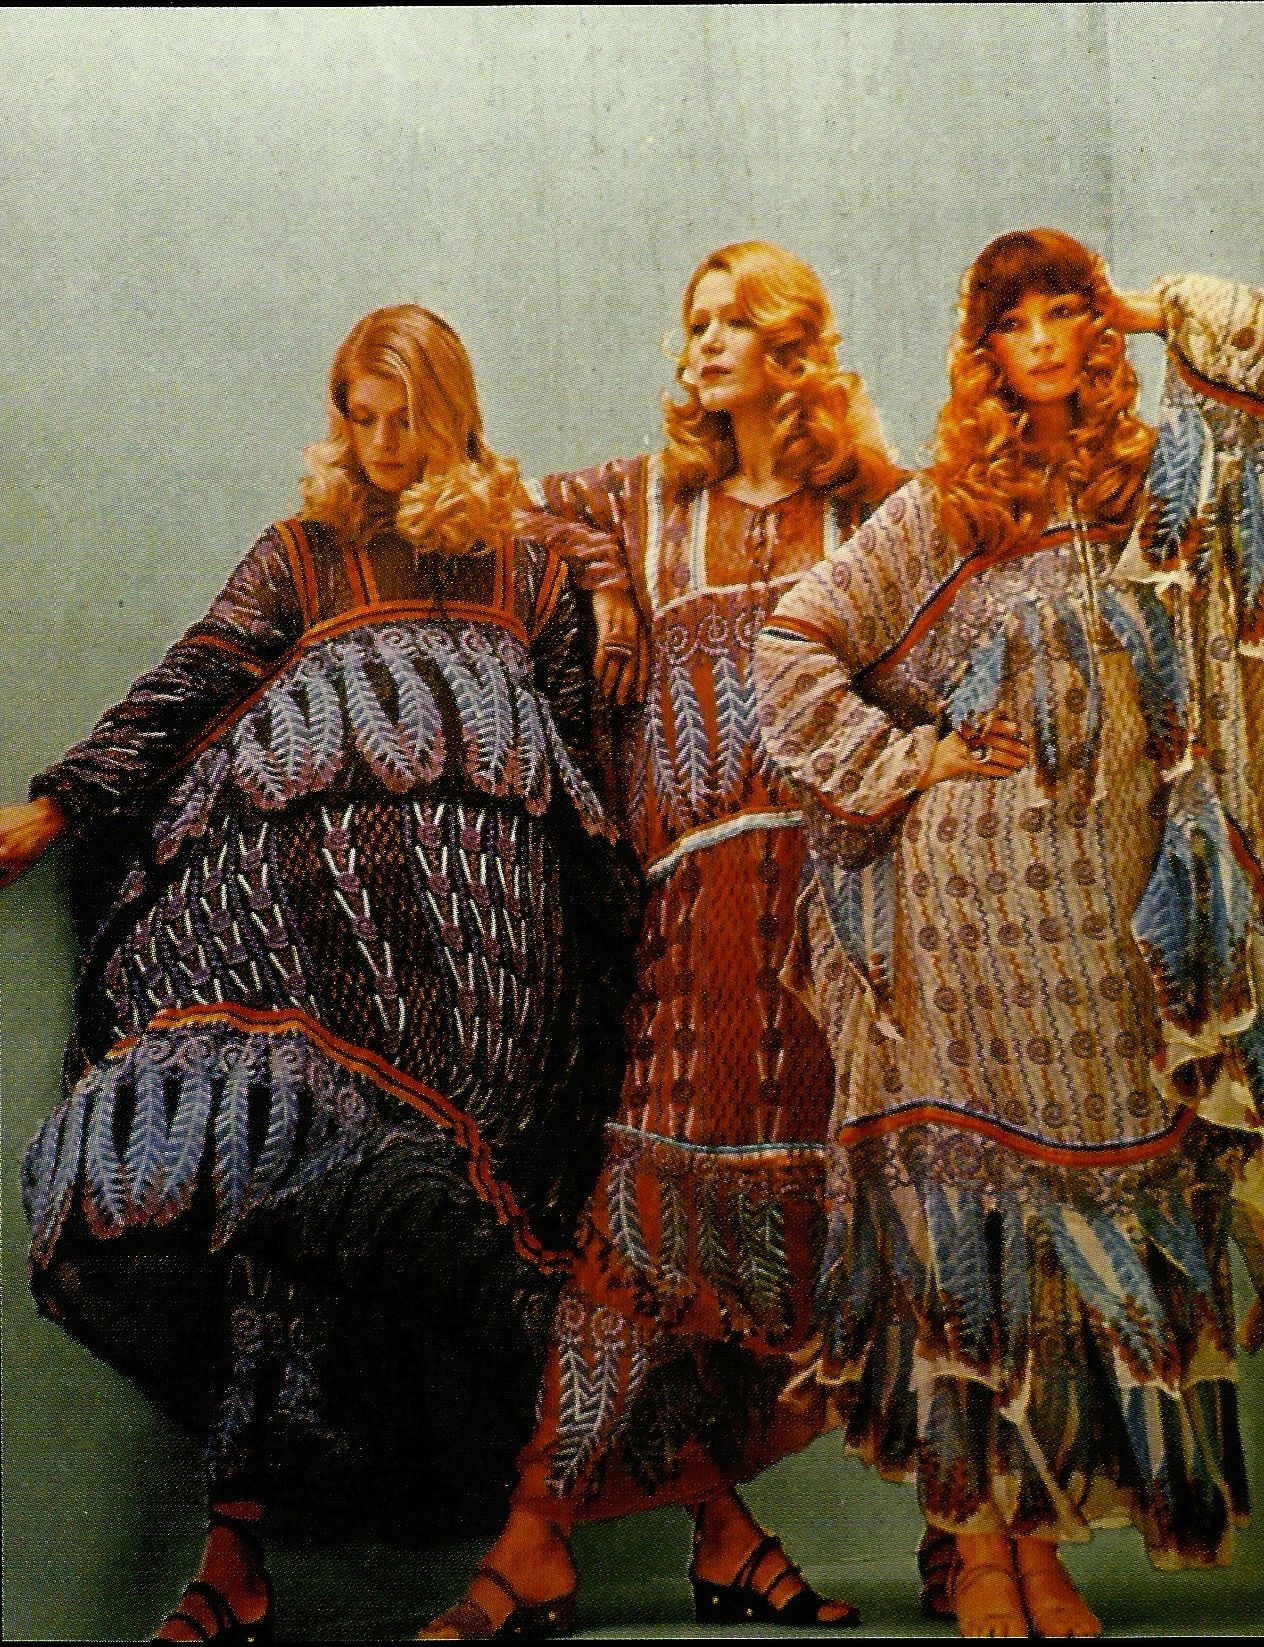 1970saesthetic Kaftans by Zandra Rhodes photographed by